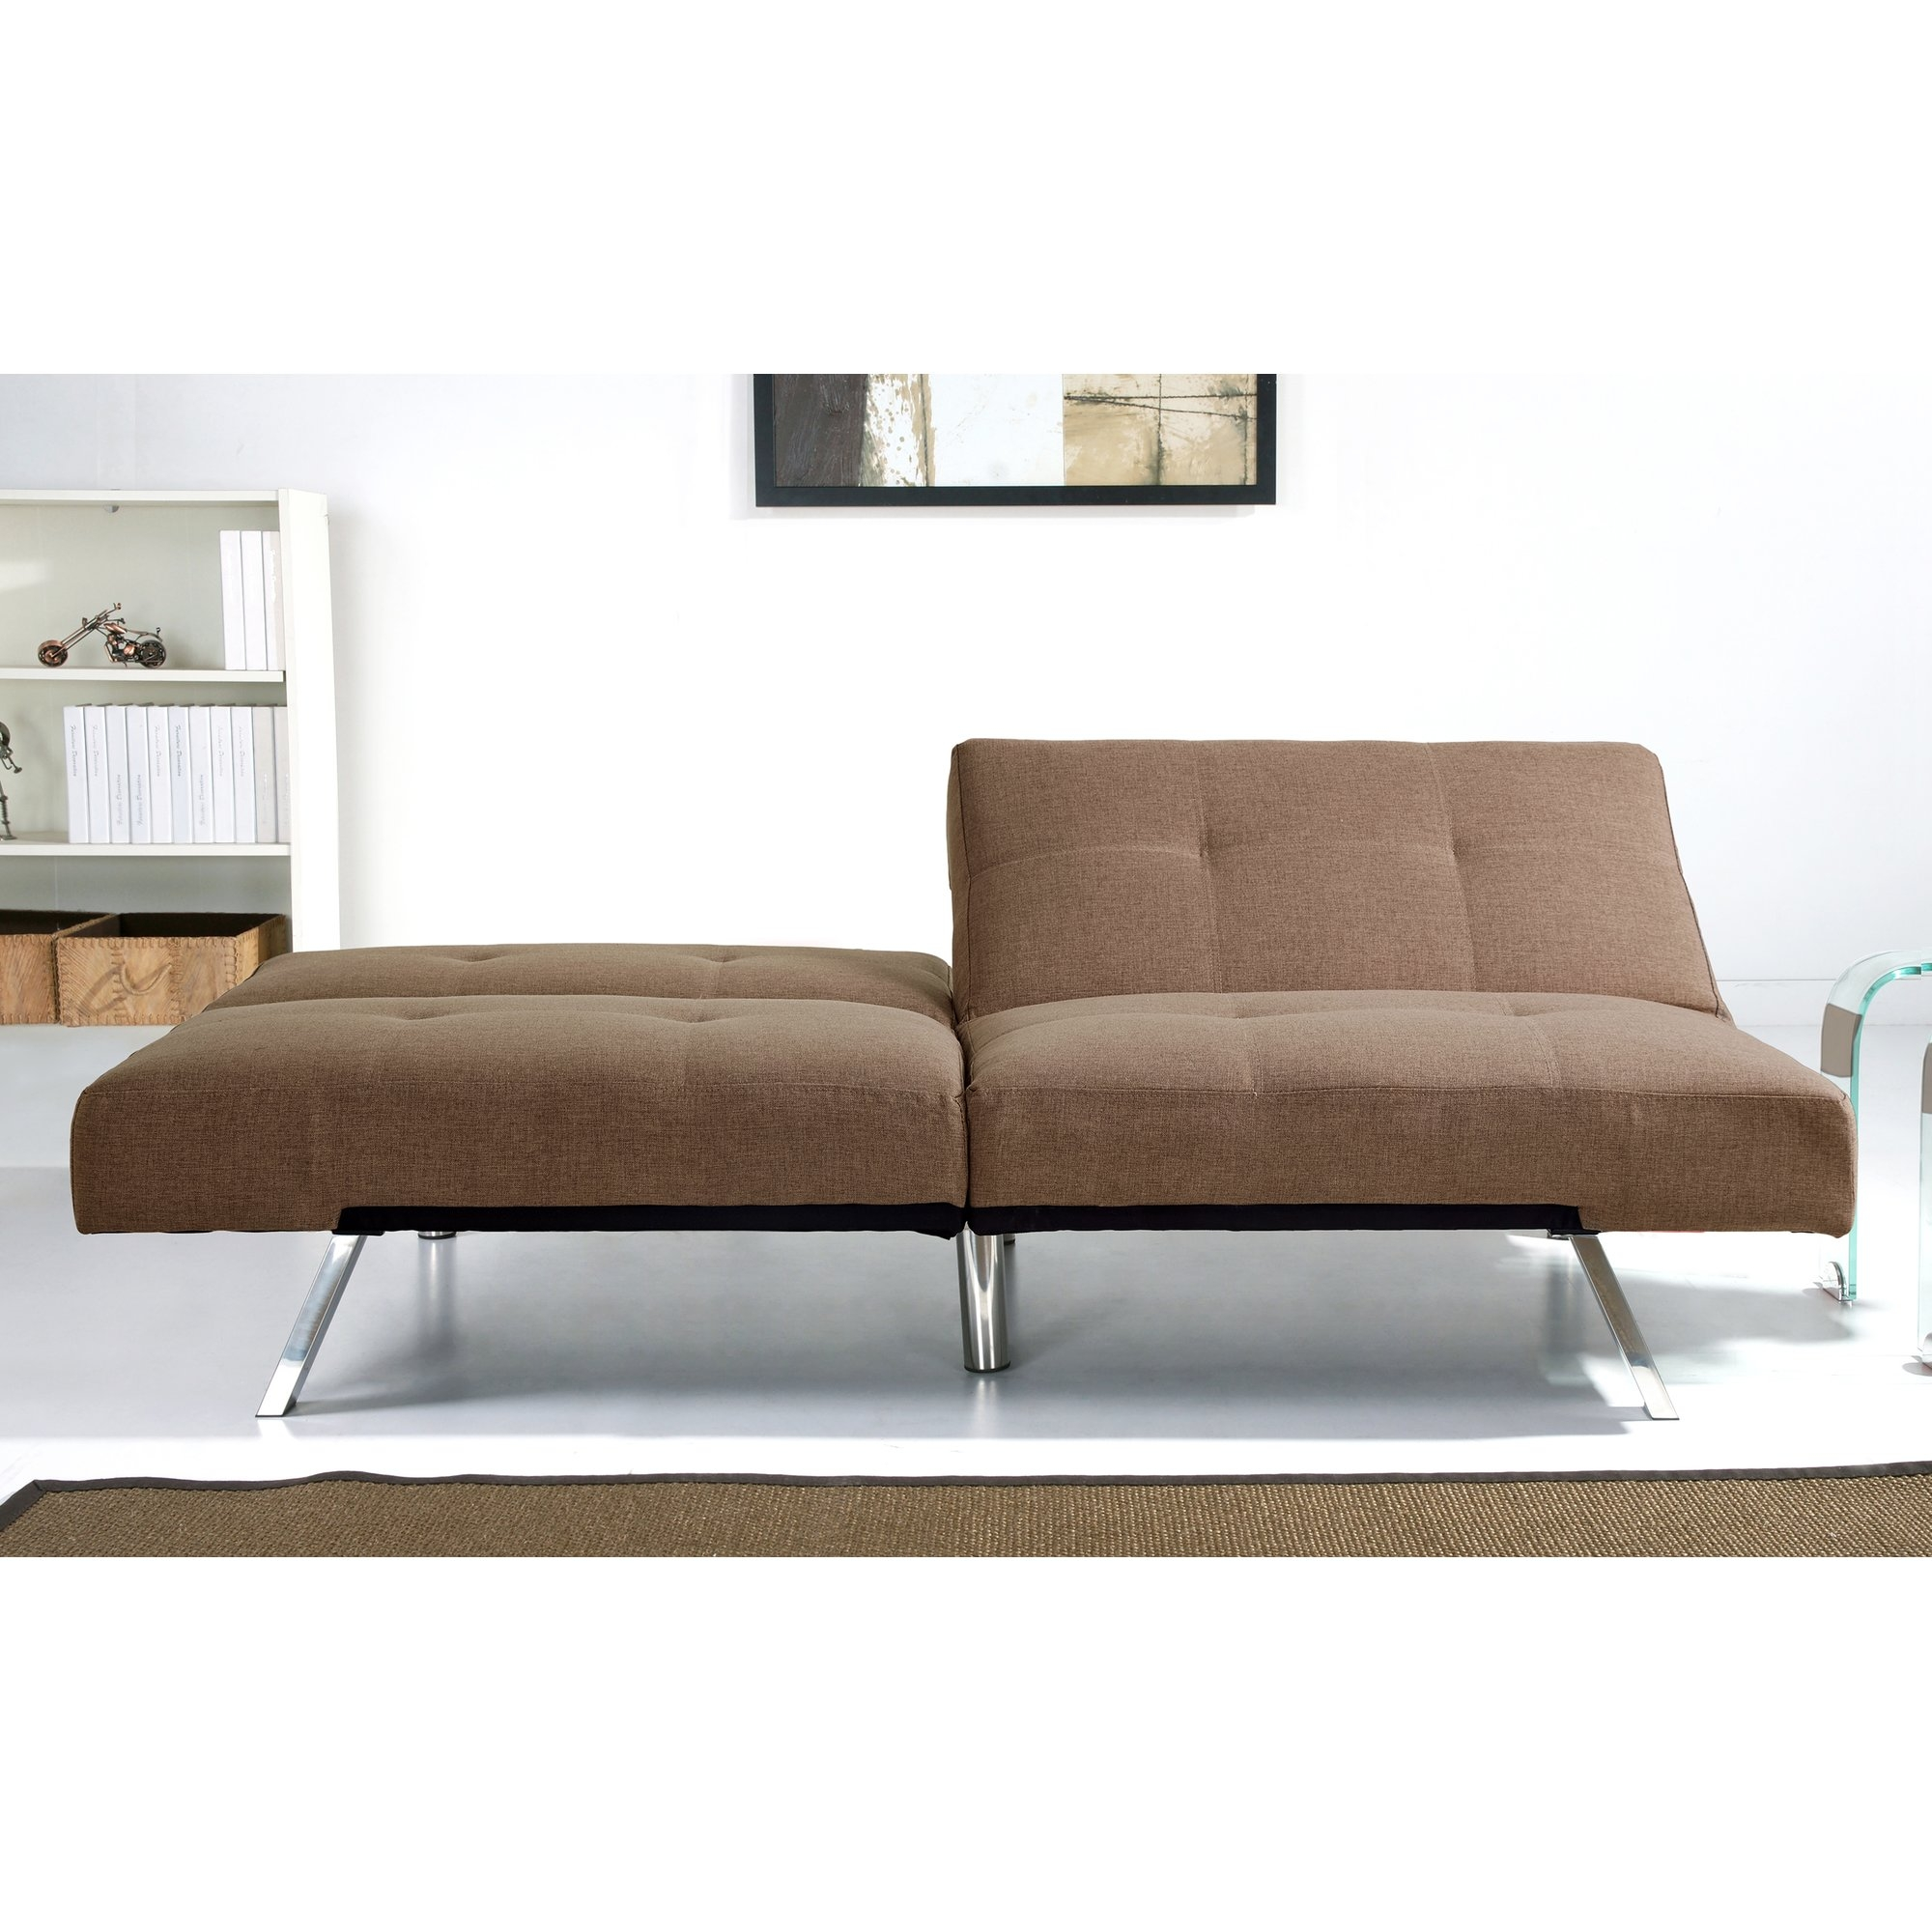 12 Best Collection of 70 Sleeper Sofa